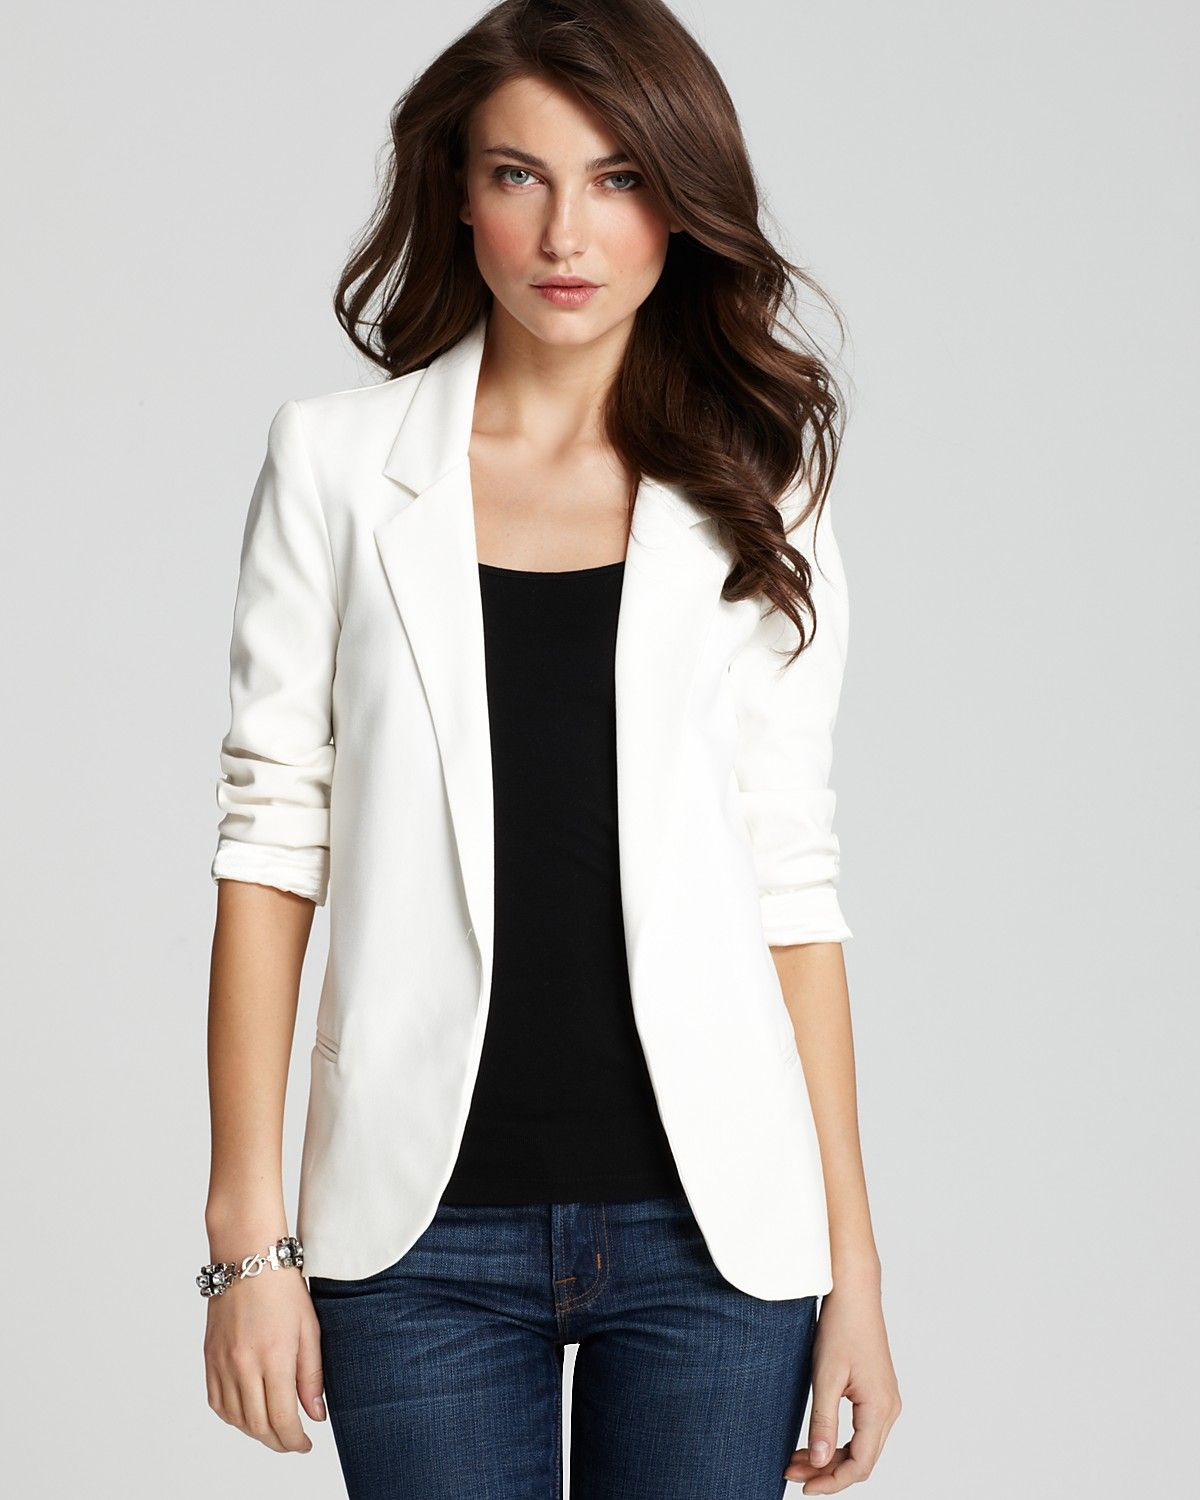 Fashion week How to white off wear blazer for woman